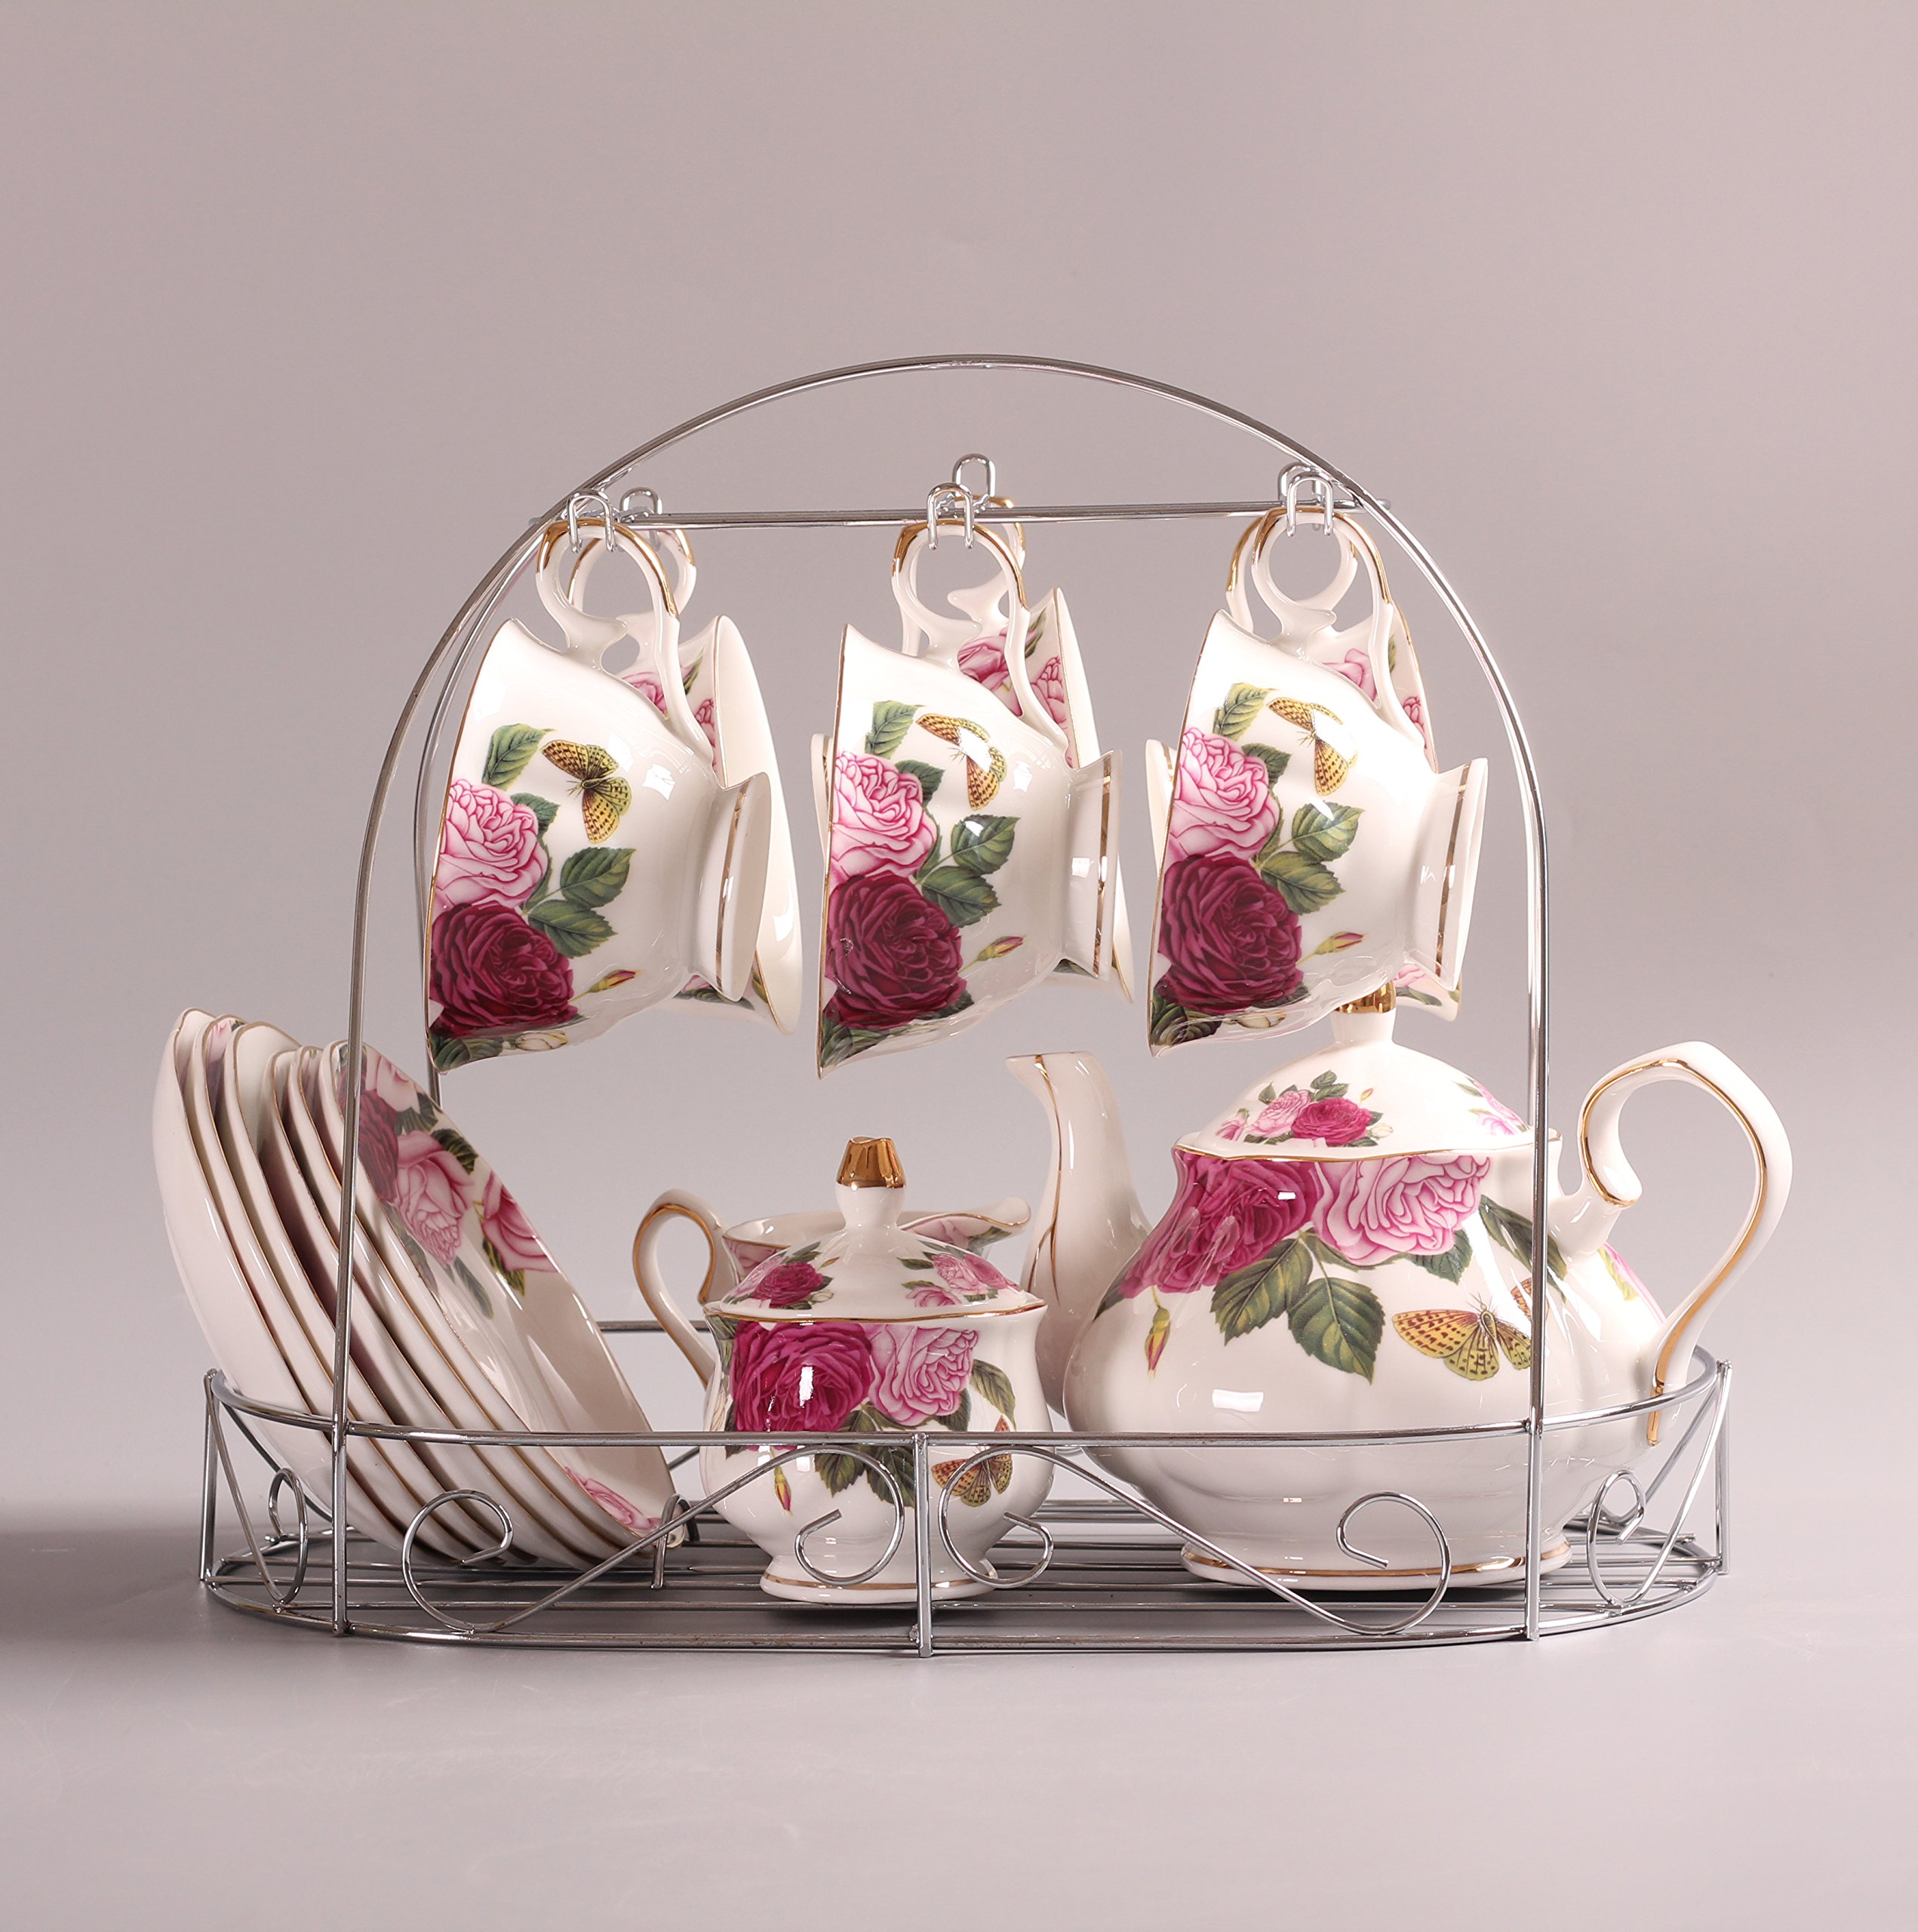 Bone China The butterfly lingers over the flower Printed Ceramic Porcelain Tea Cup Tea Set With Lid And Saucer,Coffee Set of 15 by ufengke®-ts